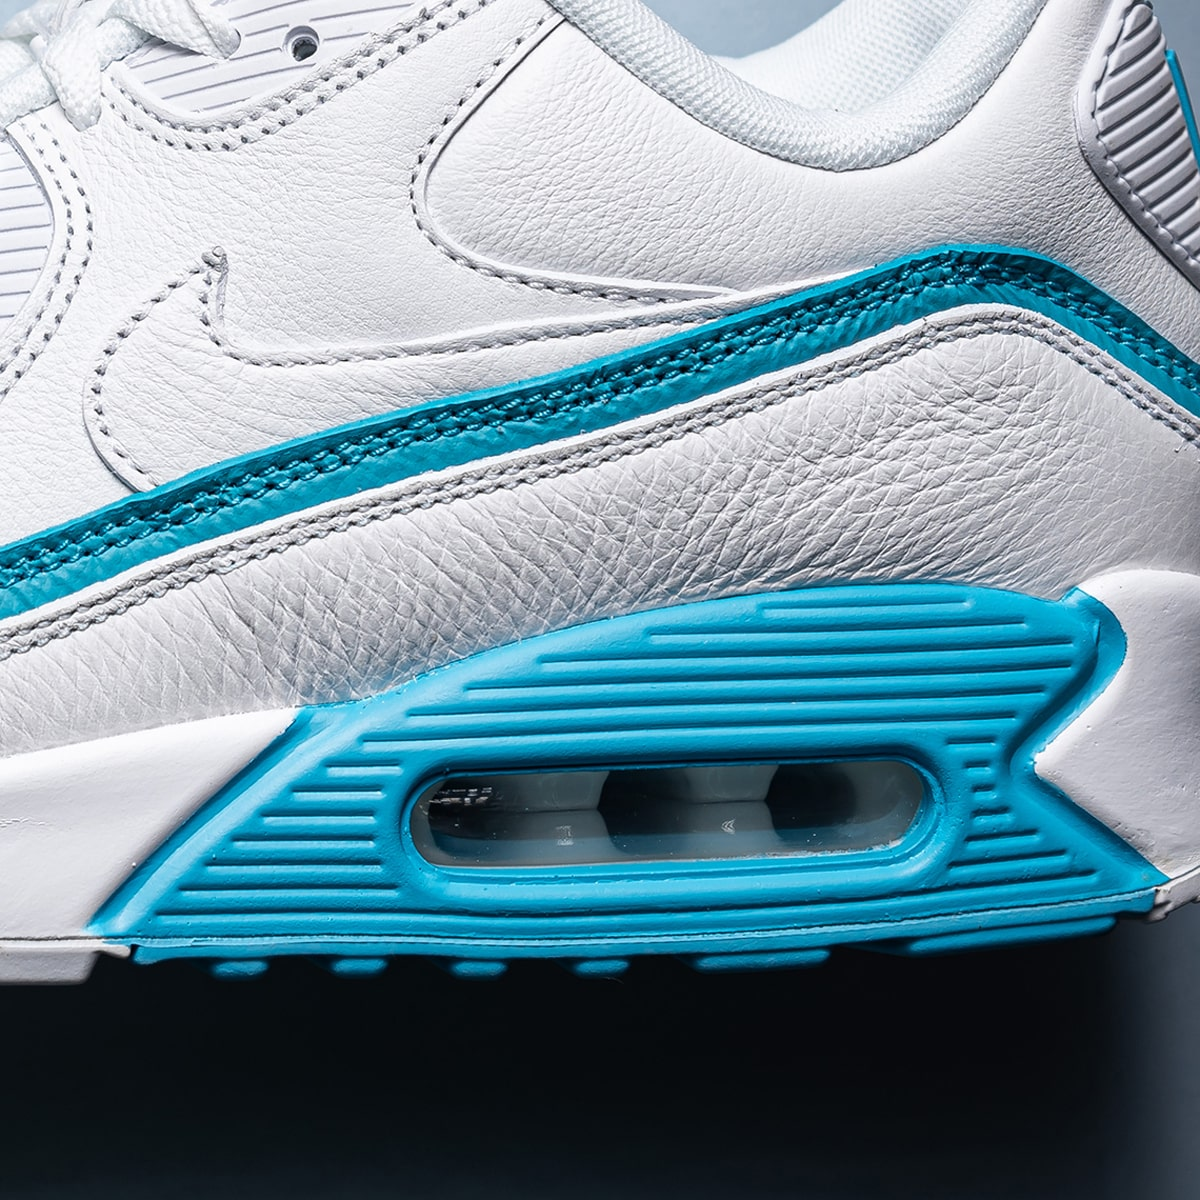 Nike Air Max 90 x UNDEFEATED First Colorway Revealed